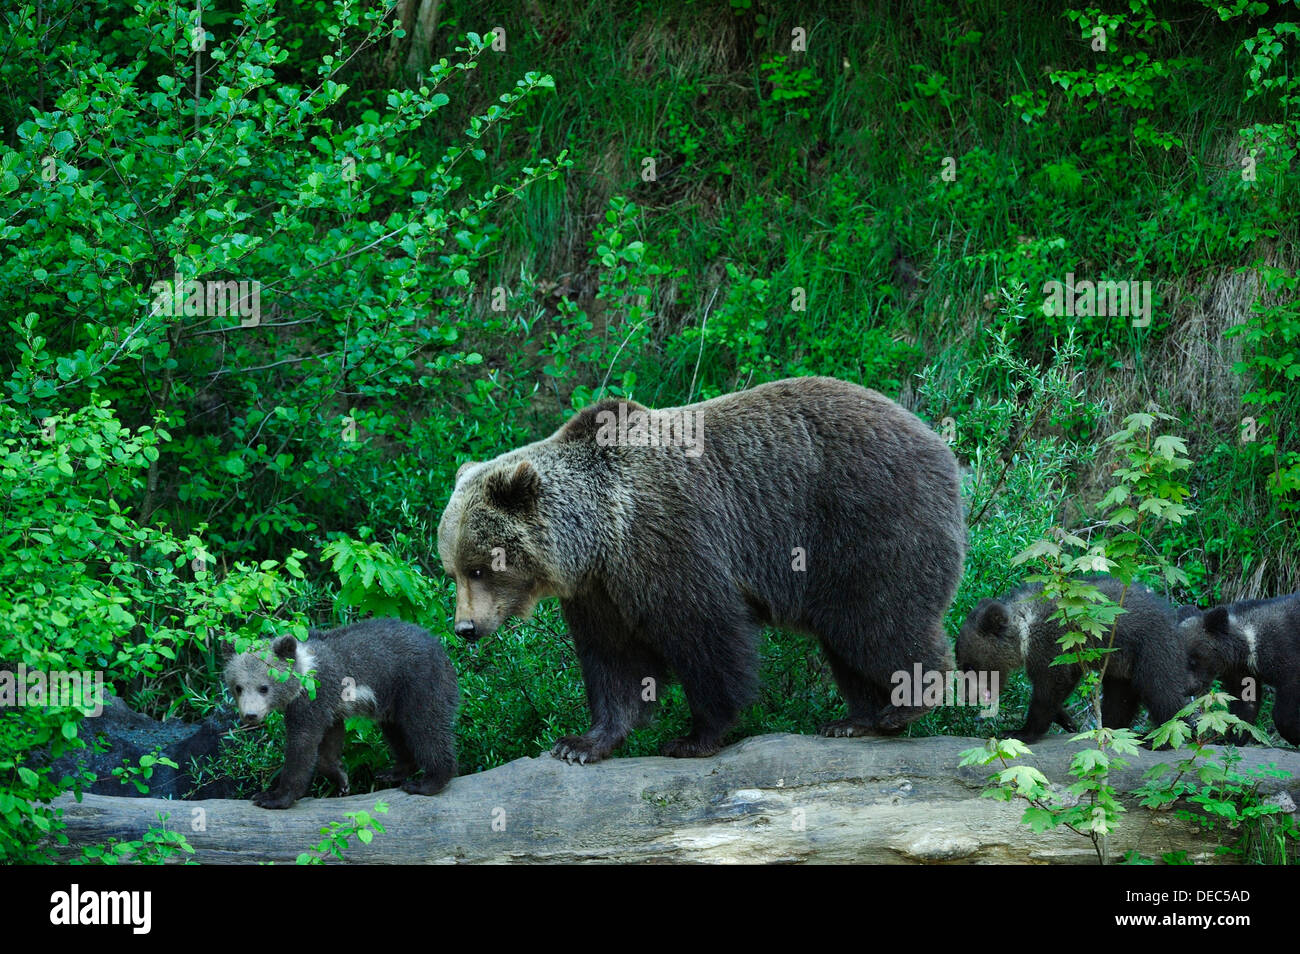 Brown Bear (Ursus arctos) exploring with its cubs, Langenberg Zoo, Adliswil, Canton of Zurich, Switzerland - Stock Image